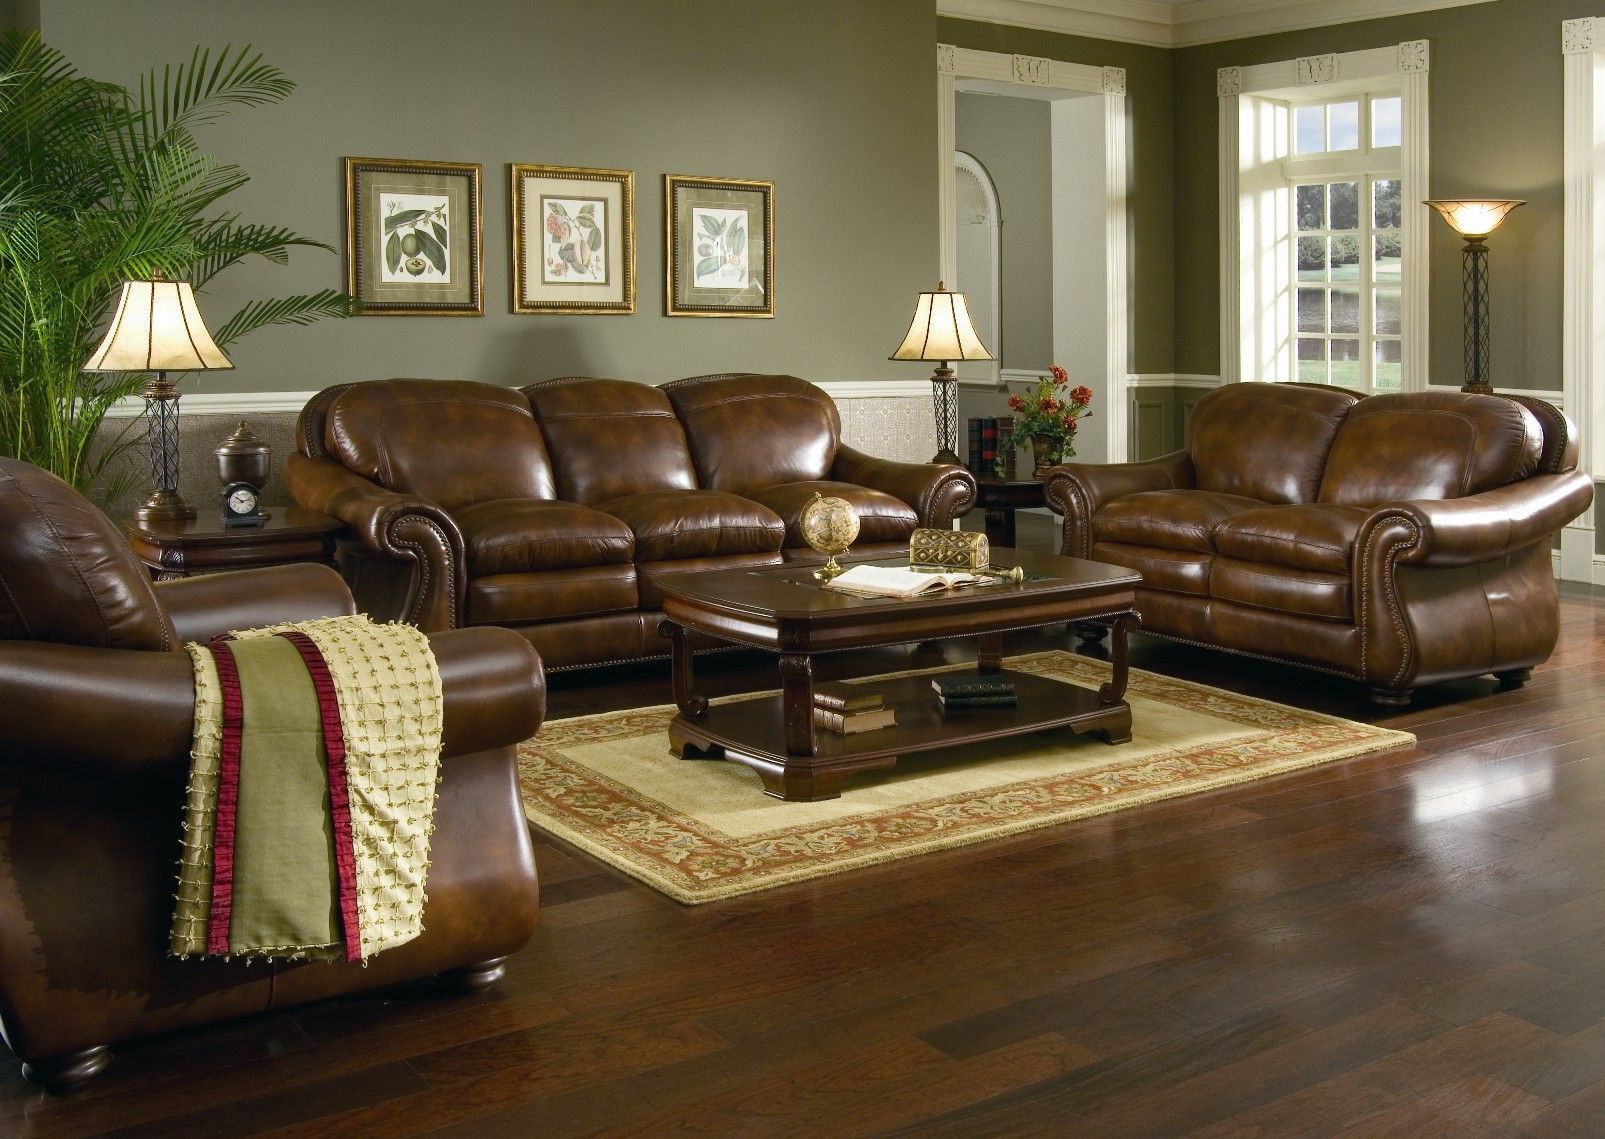 Living Room Decor Ideas With Brown Furniture best 25+ leather living rooms ideas on pinterest | leather living